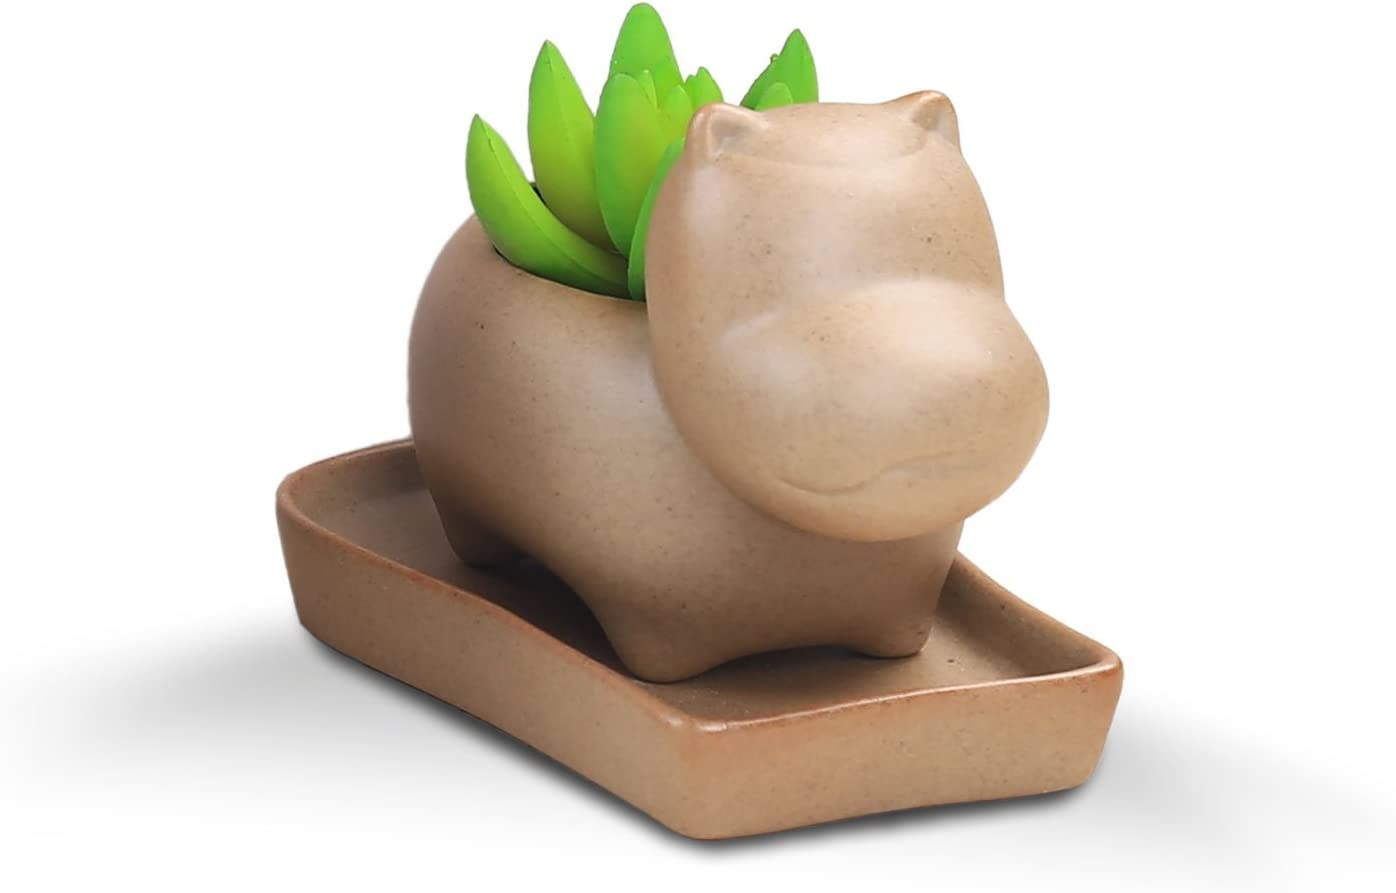 VanEnjoy Cartoon Ceramic Succulent Planter Hippo, Cactus Pot Planter, Flower Pot, Earthtone Tan Unglazed Brown Pottery Bonsai Pot, Natural Finish, with Drainage Hole Saucer Tray Hippo